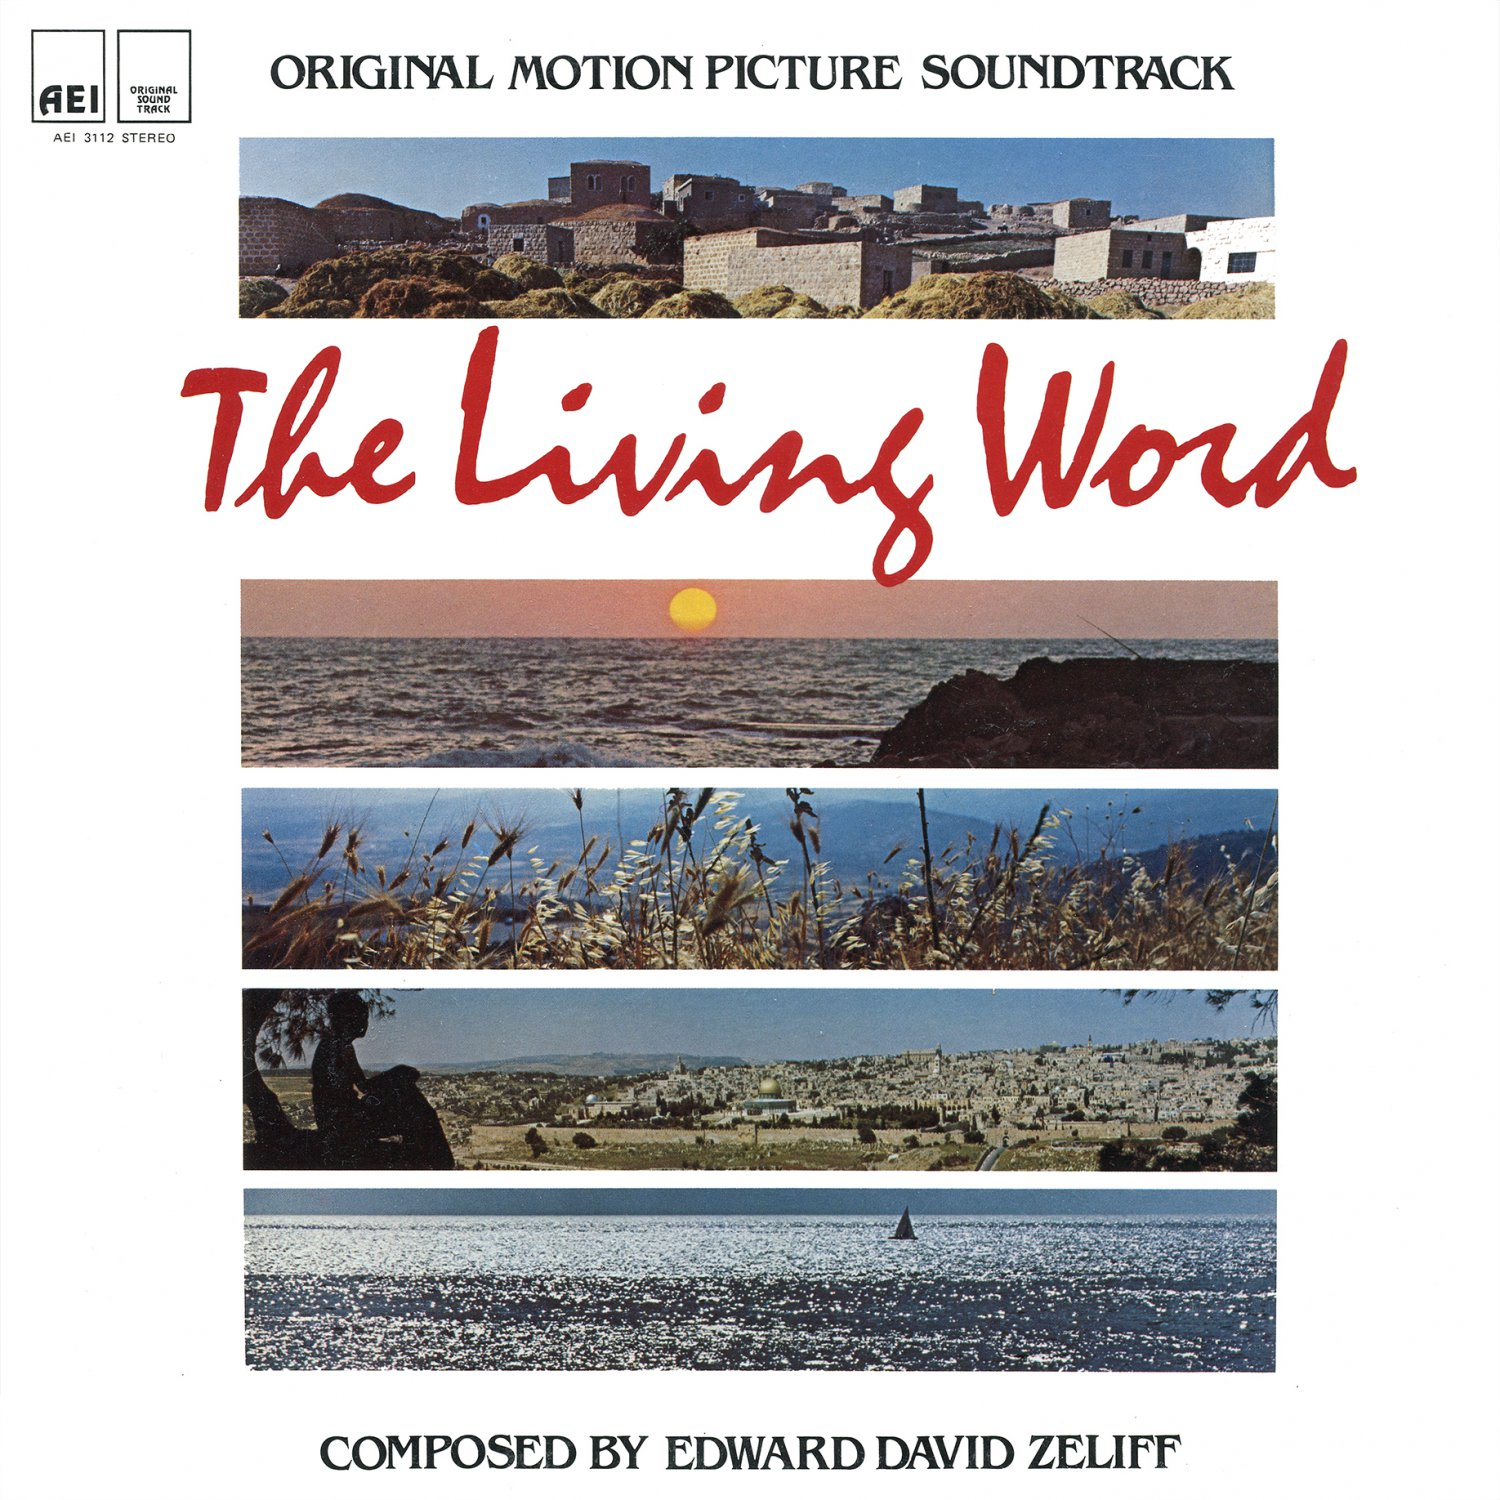 The Living Word (1982) - Original Soundtrack, Edward David Zeliff OST LP/CD